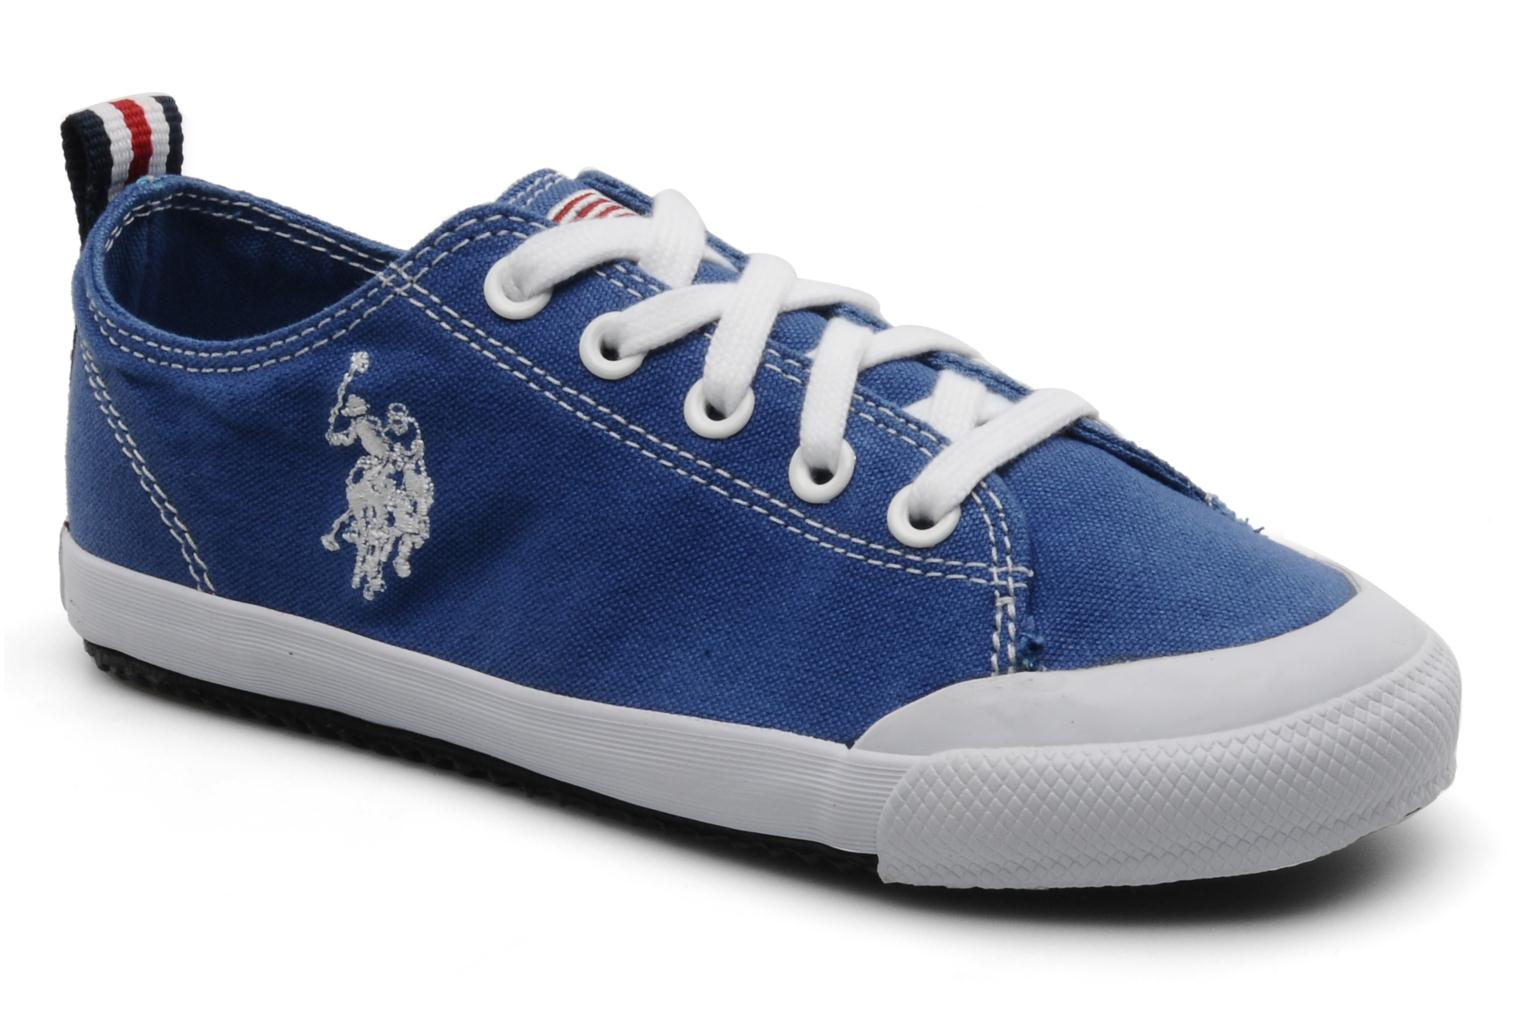 Sneakers Boris by U.S Polo Assn.